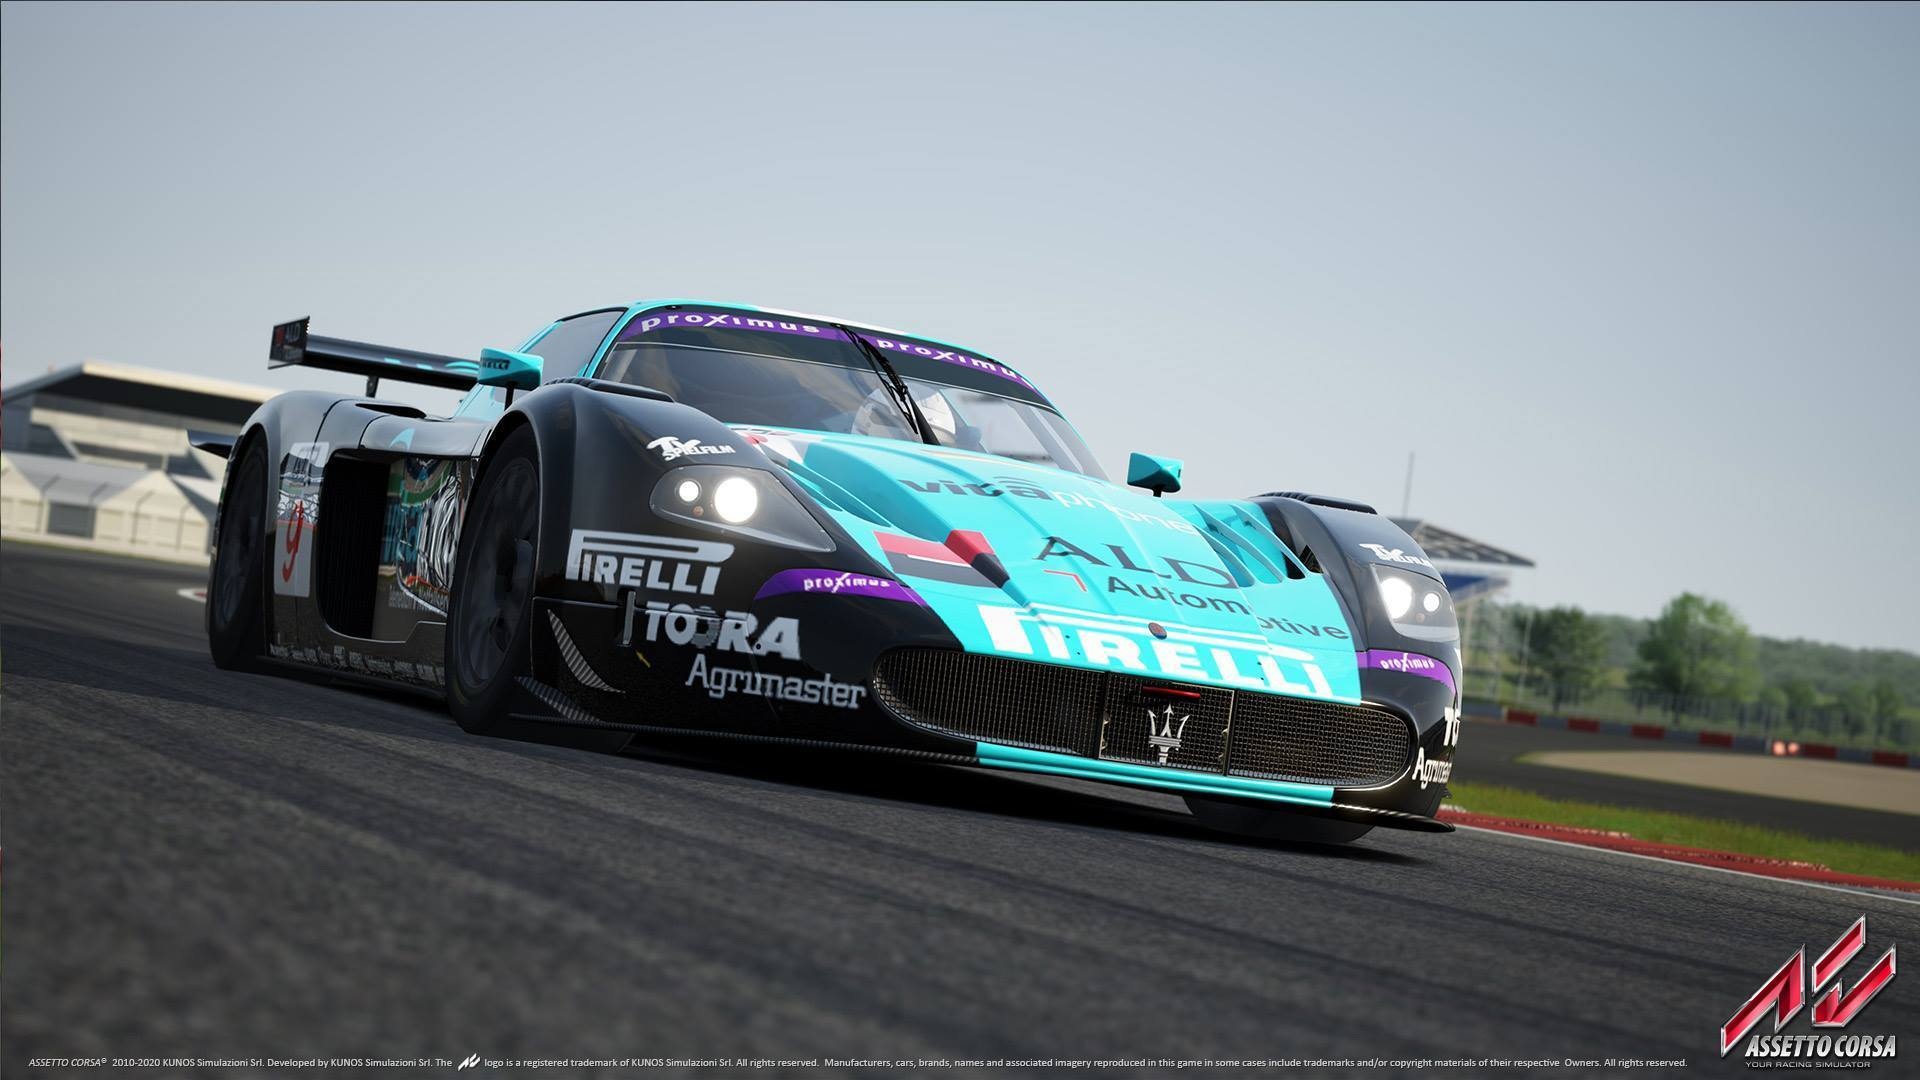 Toyota Tire Sale >> More Assetto Corsa 'Ready To Race' Images: R8 LMS, TT RS ...